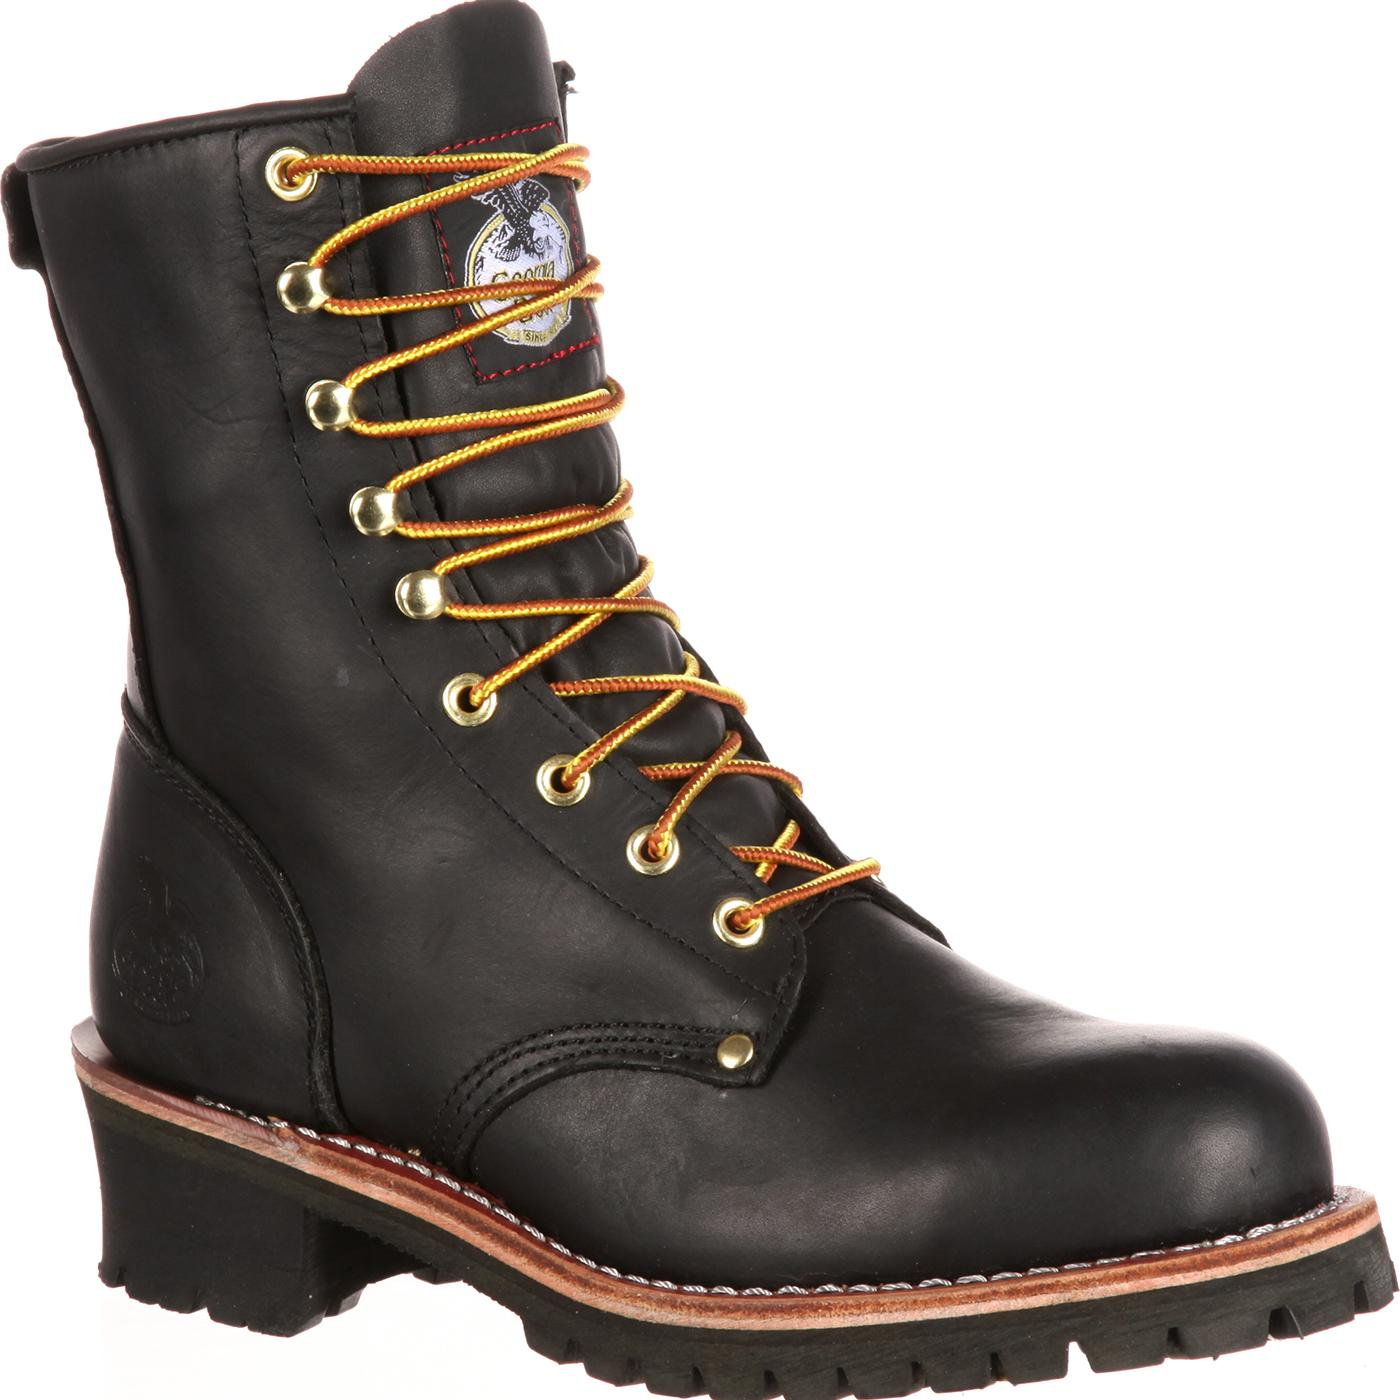 Logger Work Boots sVZyNHPY